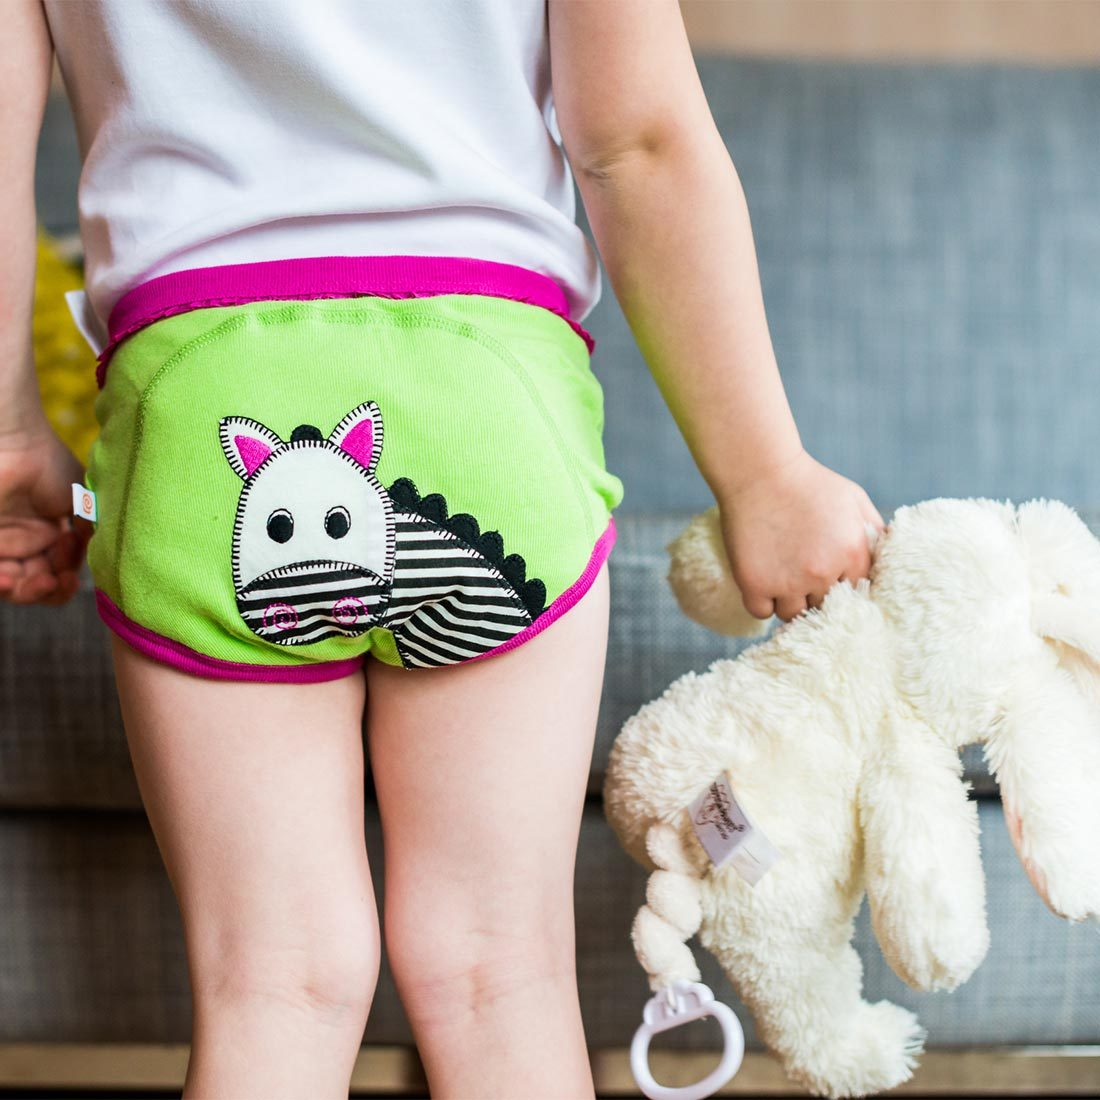 ZOOCCHINI Girls 3 Piece Organic Potty Training Pants Set - Safari Friends